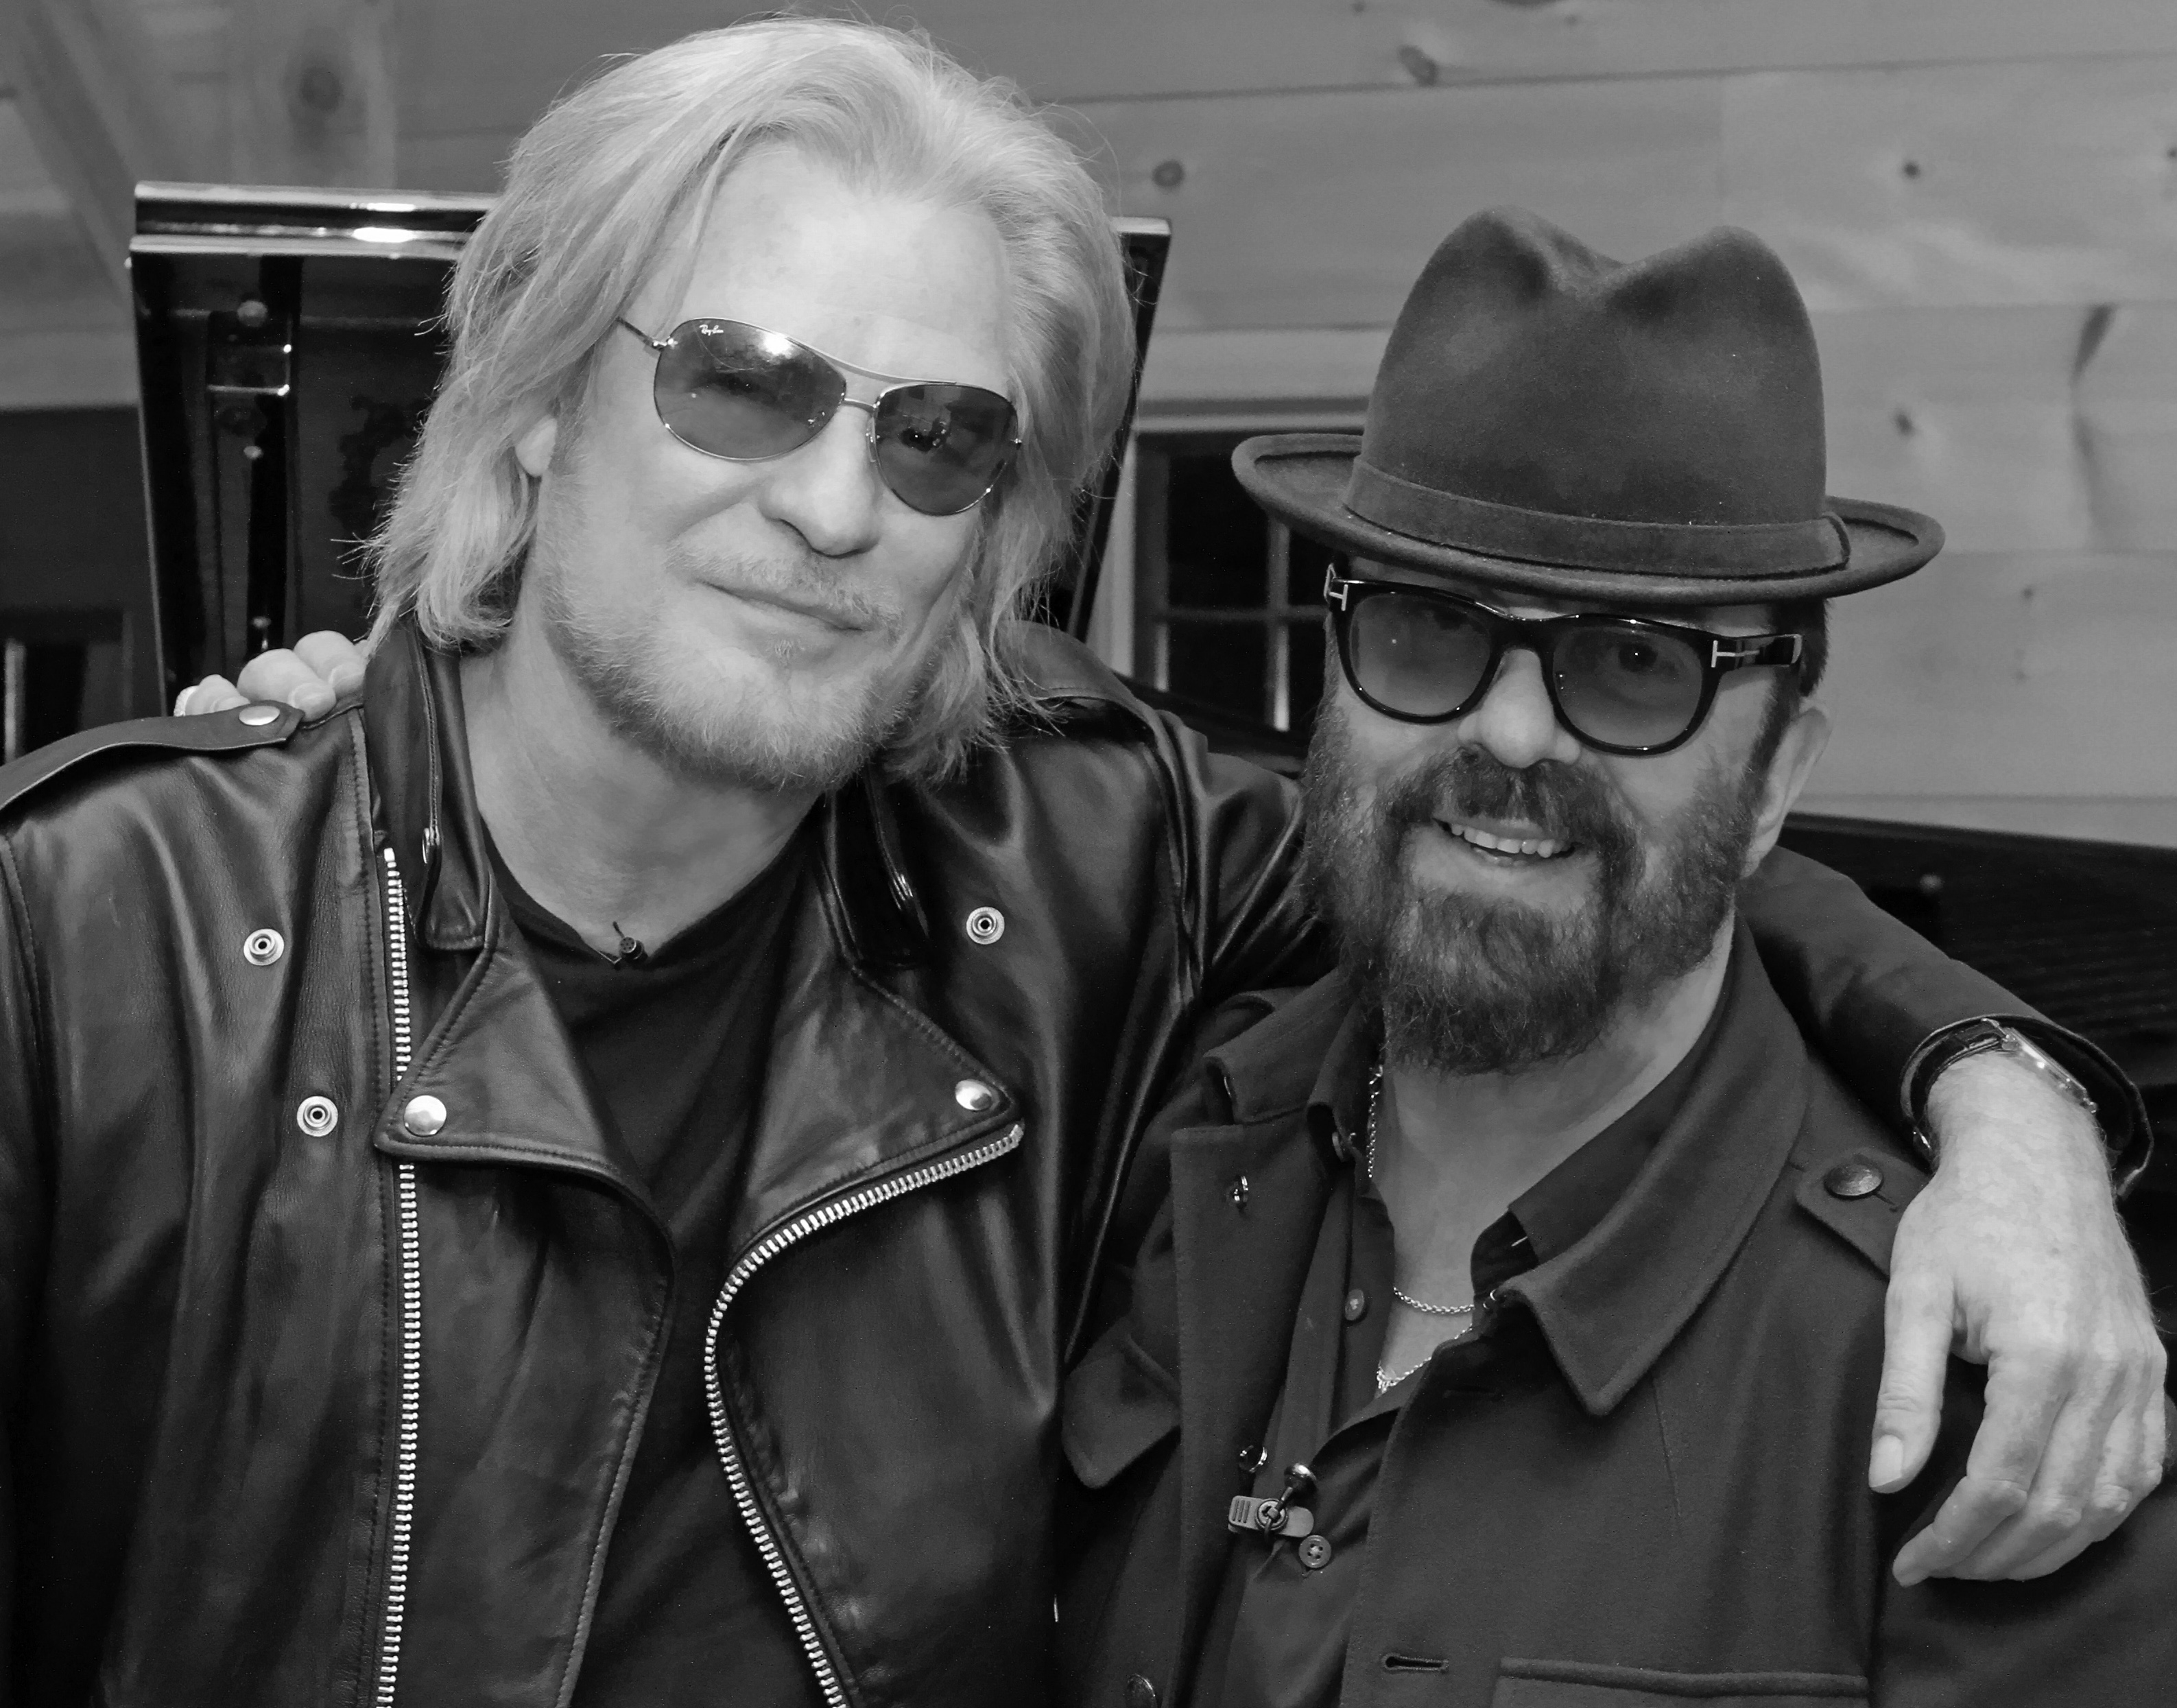 For a photo of Daryl Hall and Dave Stewart from the taping, please